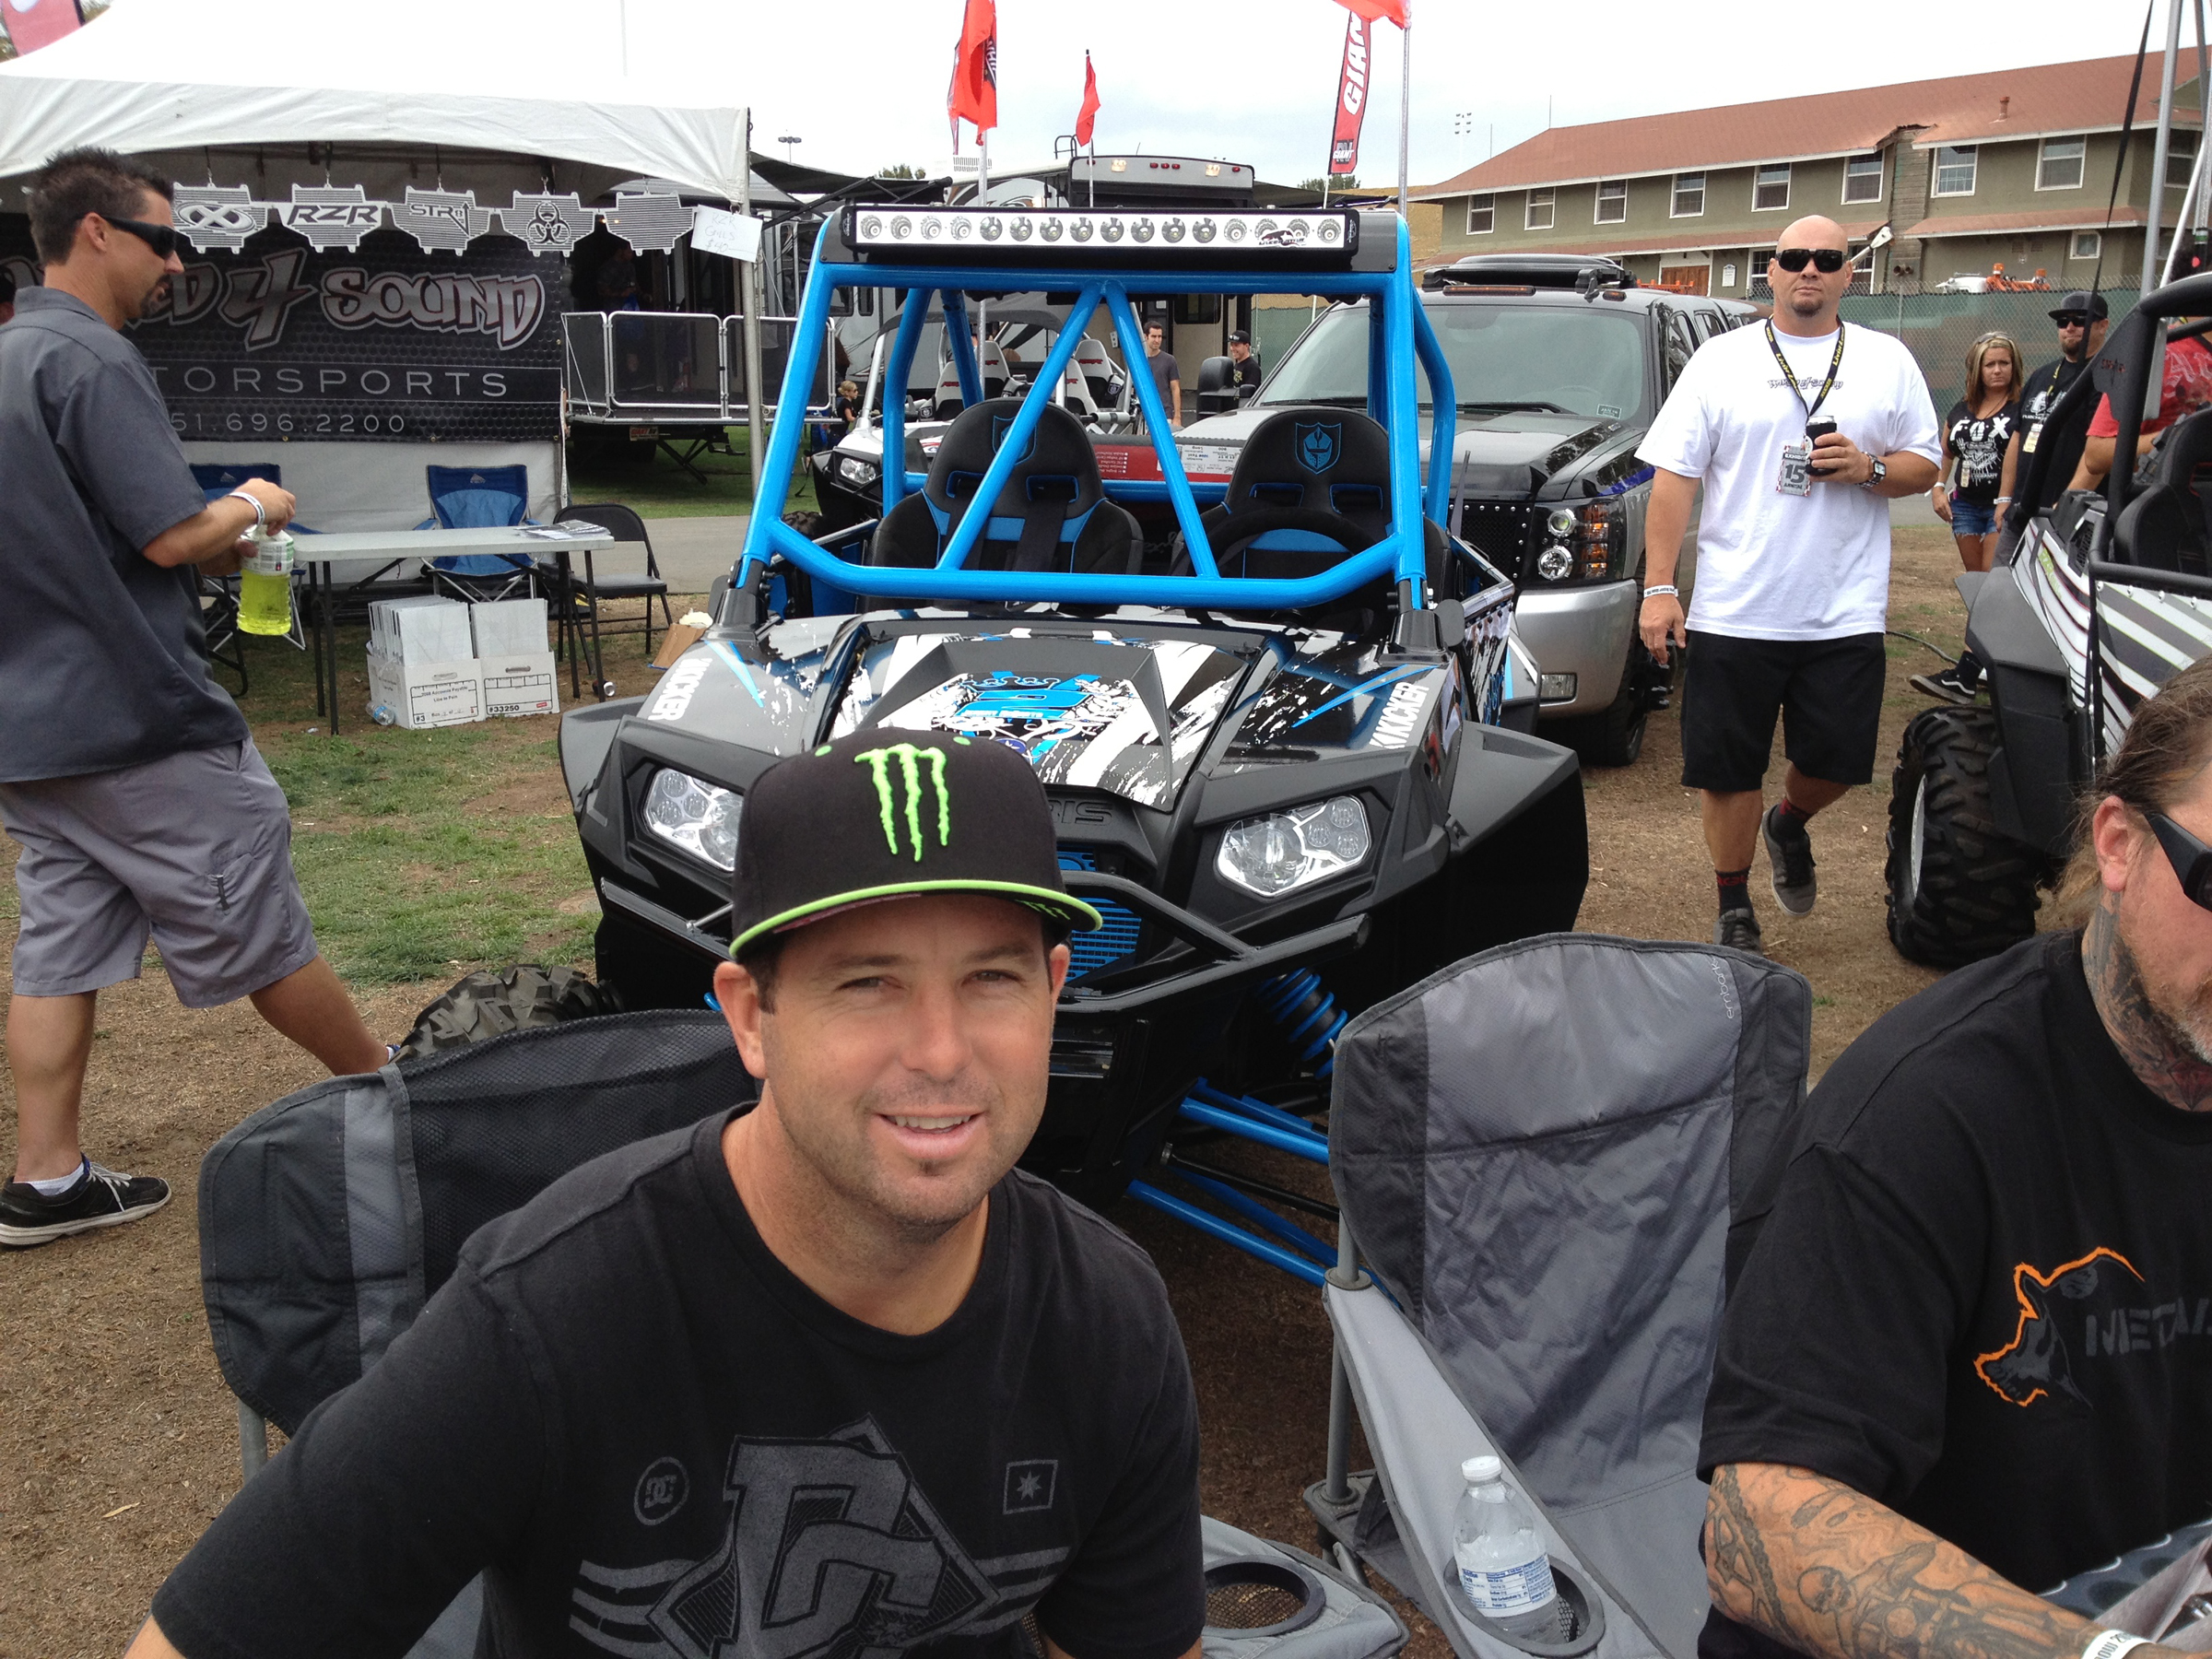 Jeremy McGrath and his Lazer Star equipped Polaris RZR built by Pro Armor at the 2013 Sand Show.